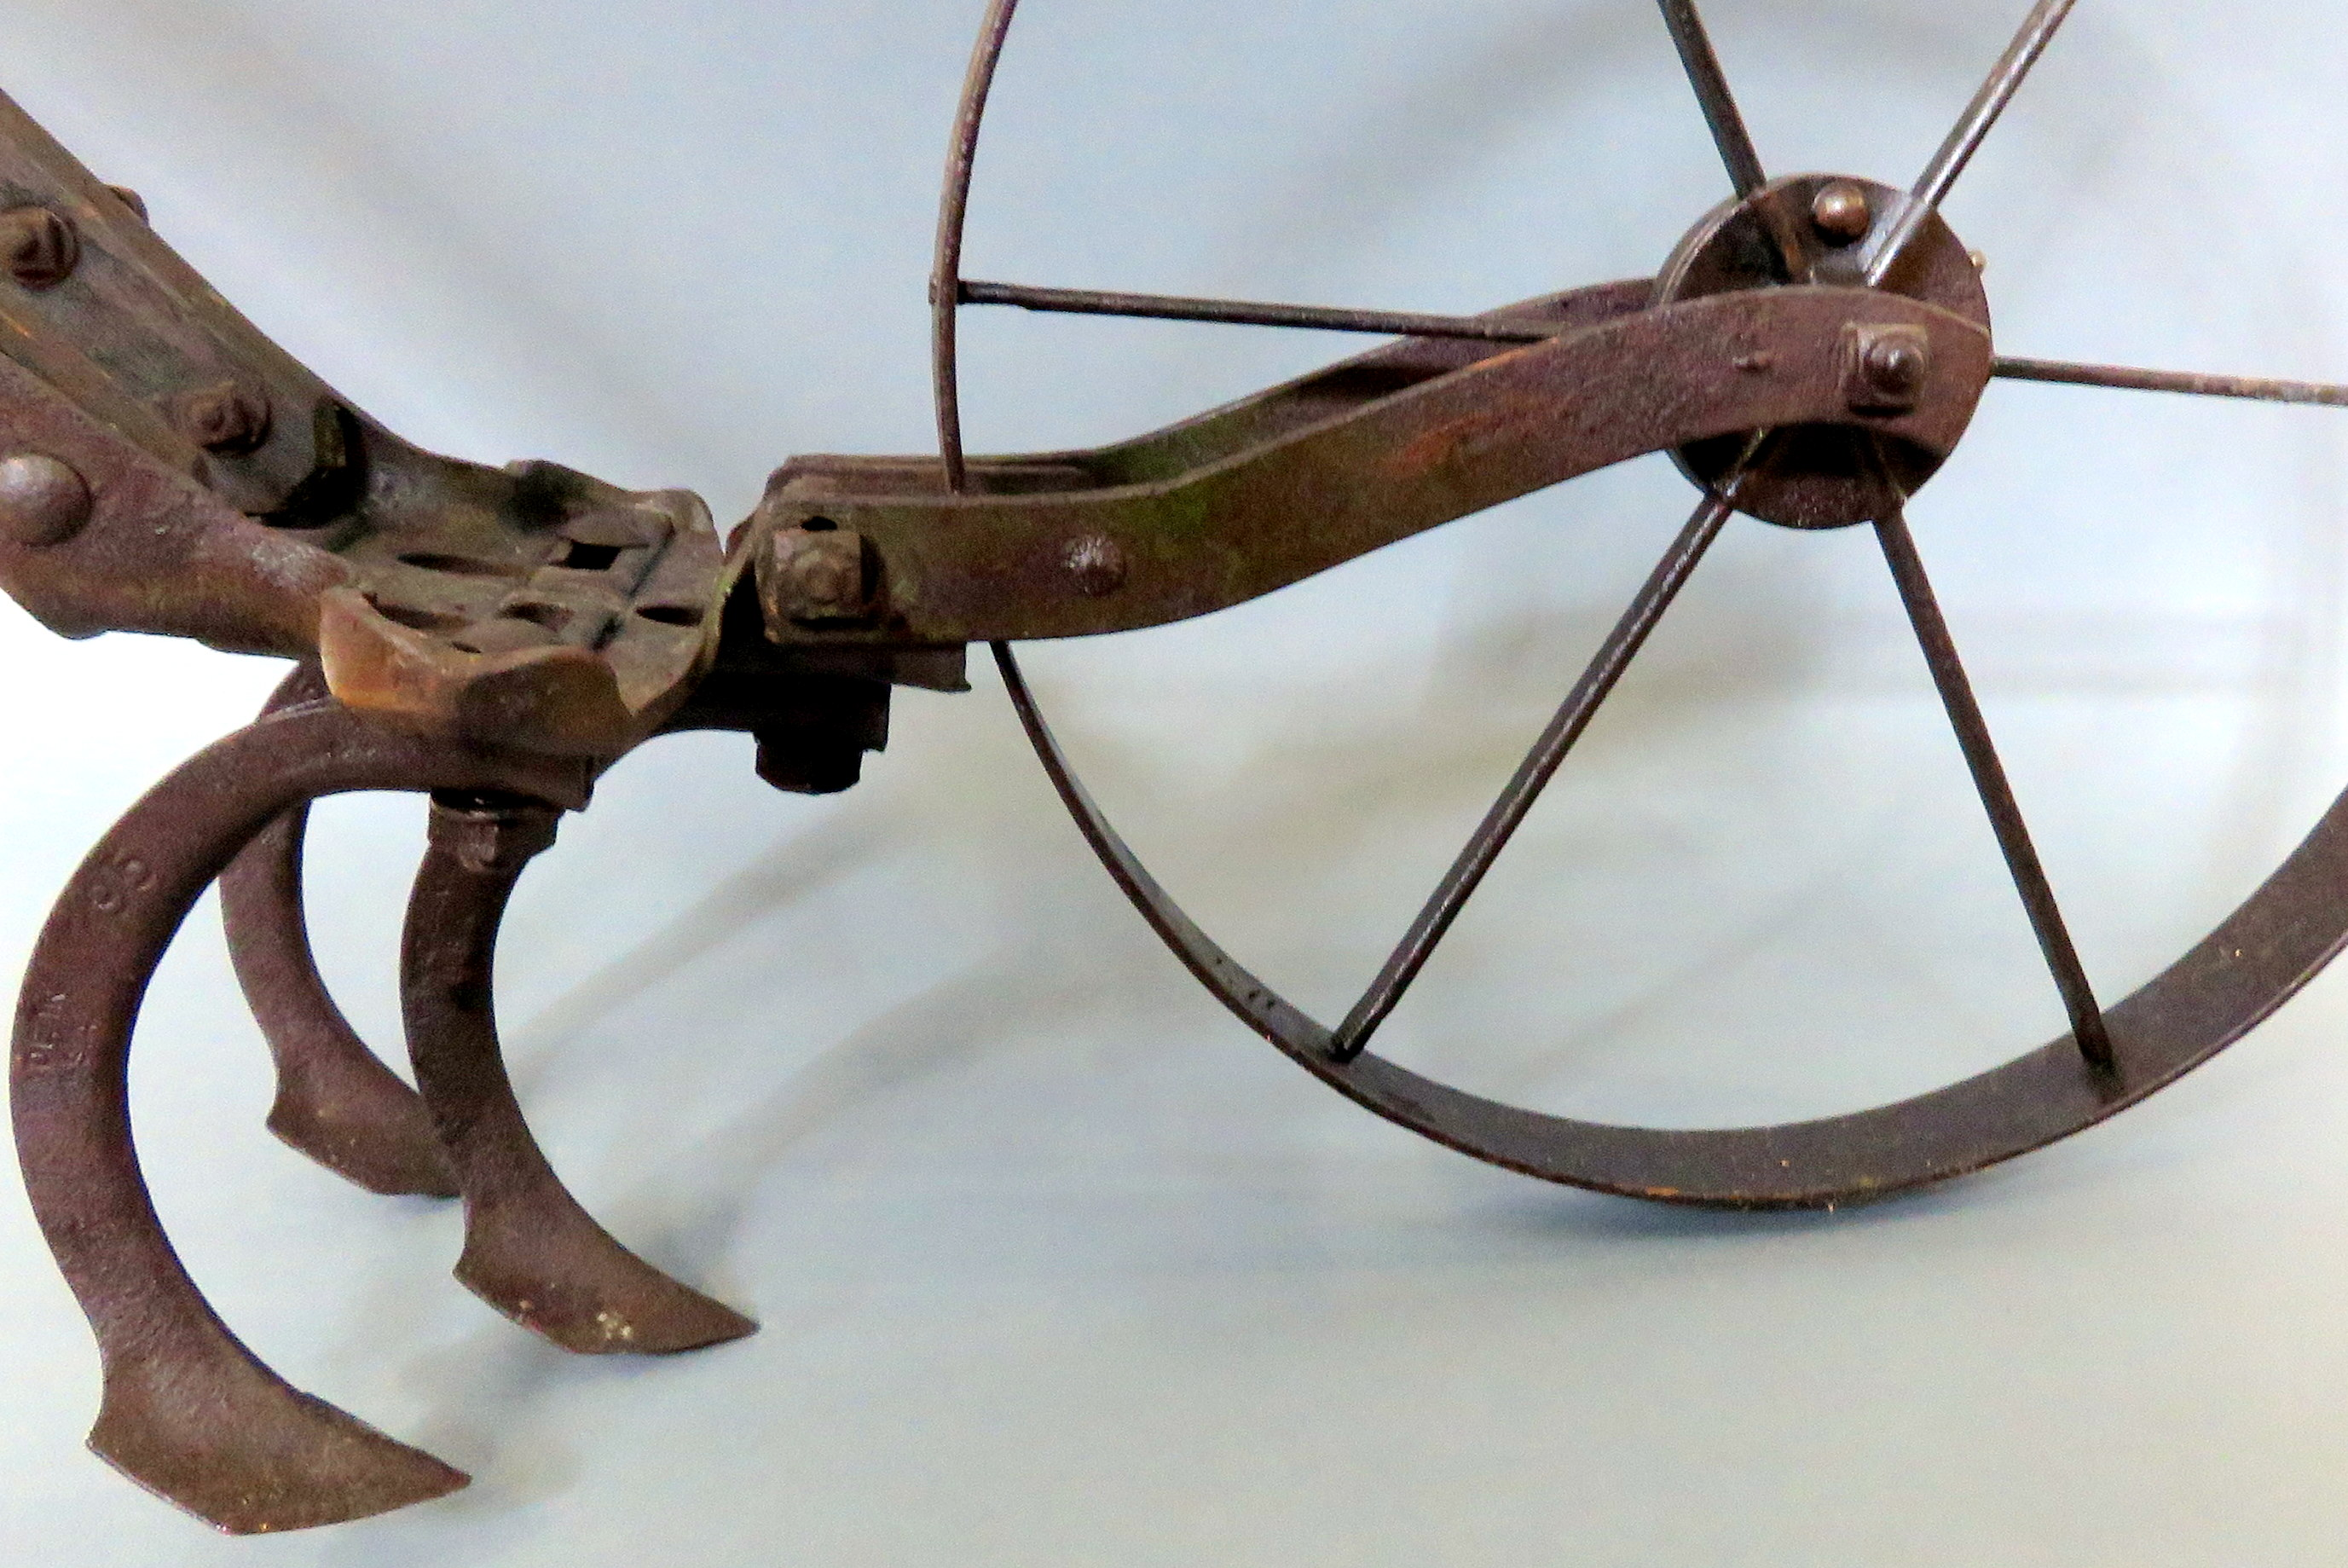 One of the tools with two wheels and two hoe sweeps attached, used for weeding, preparing the soil surface, or creating furrows (rows) as it was pushed by hand.